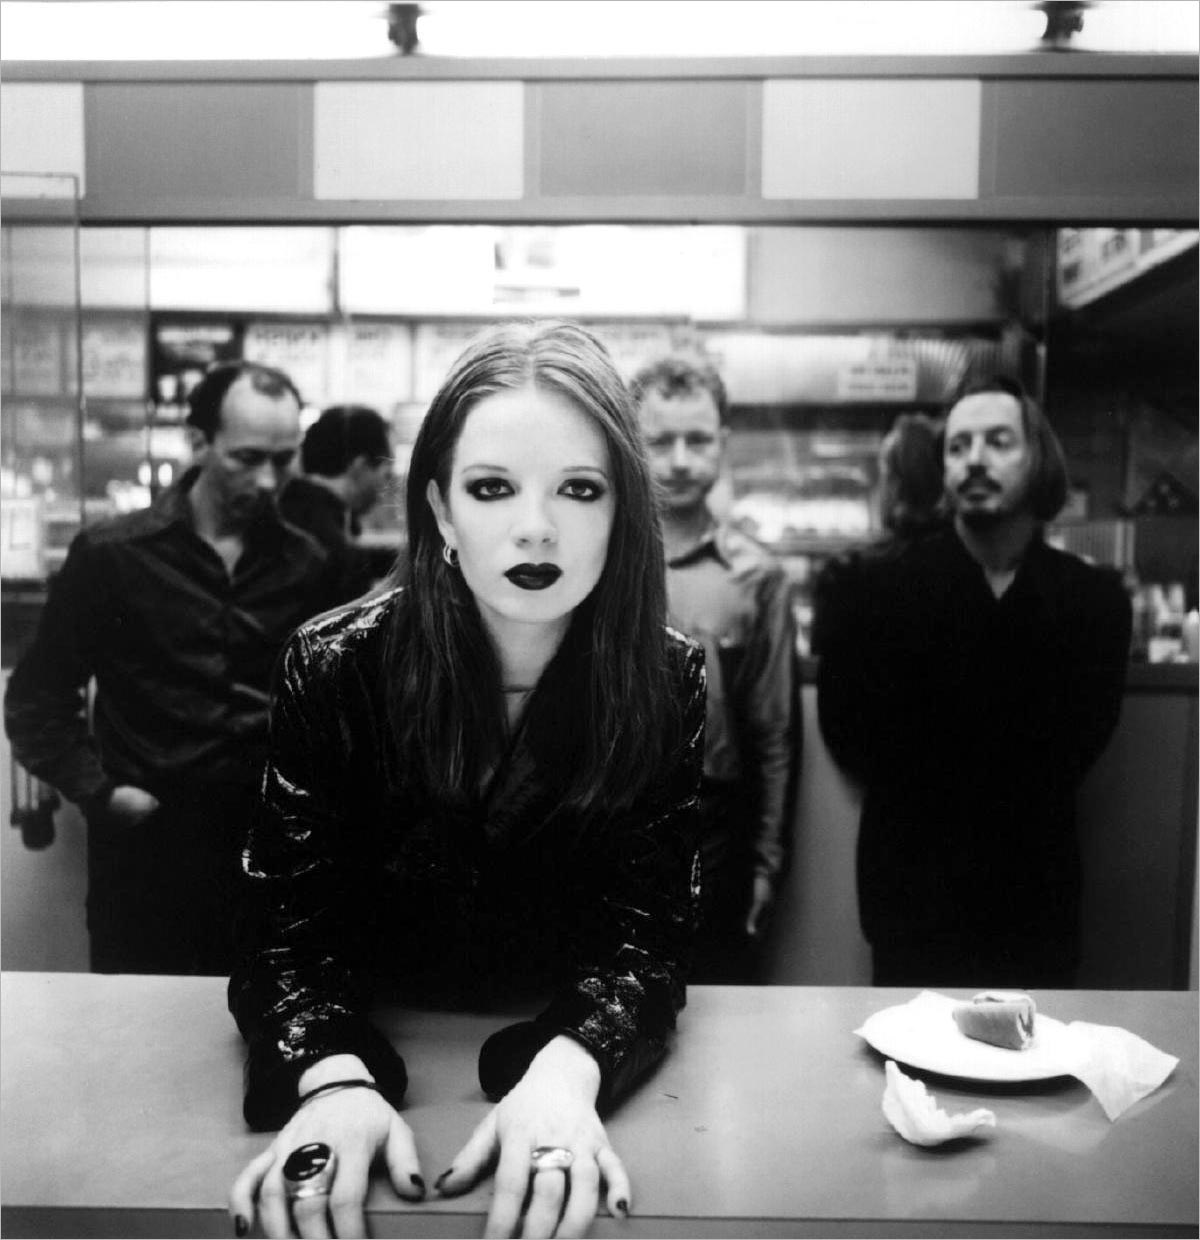 Pour your misery down: Garbage turns 25   The Bozho